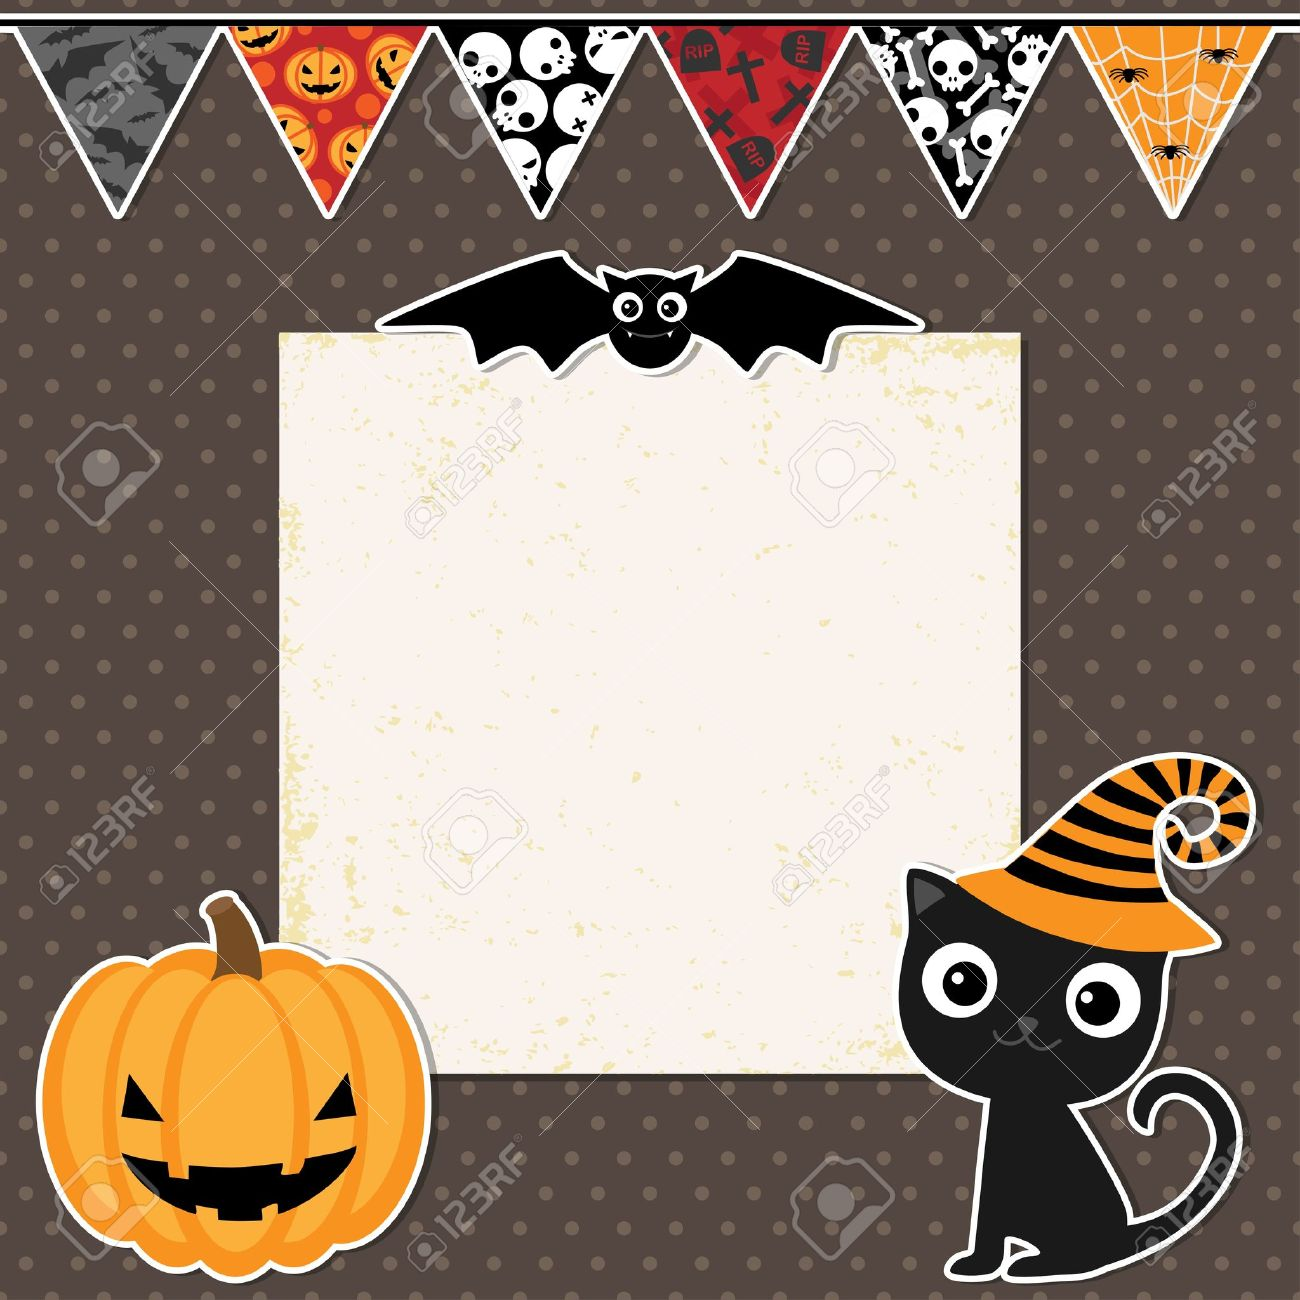 Cute Halloween Party Card With Space For Text Royalty Free ...